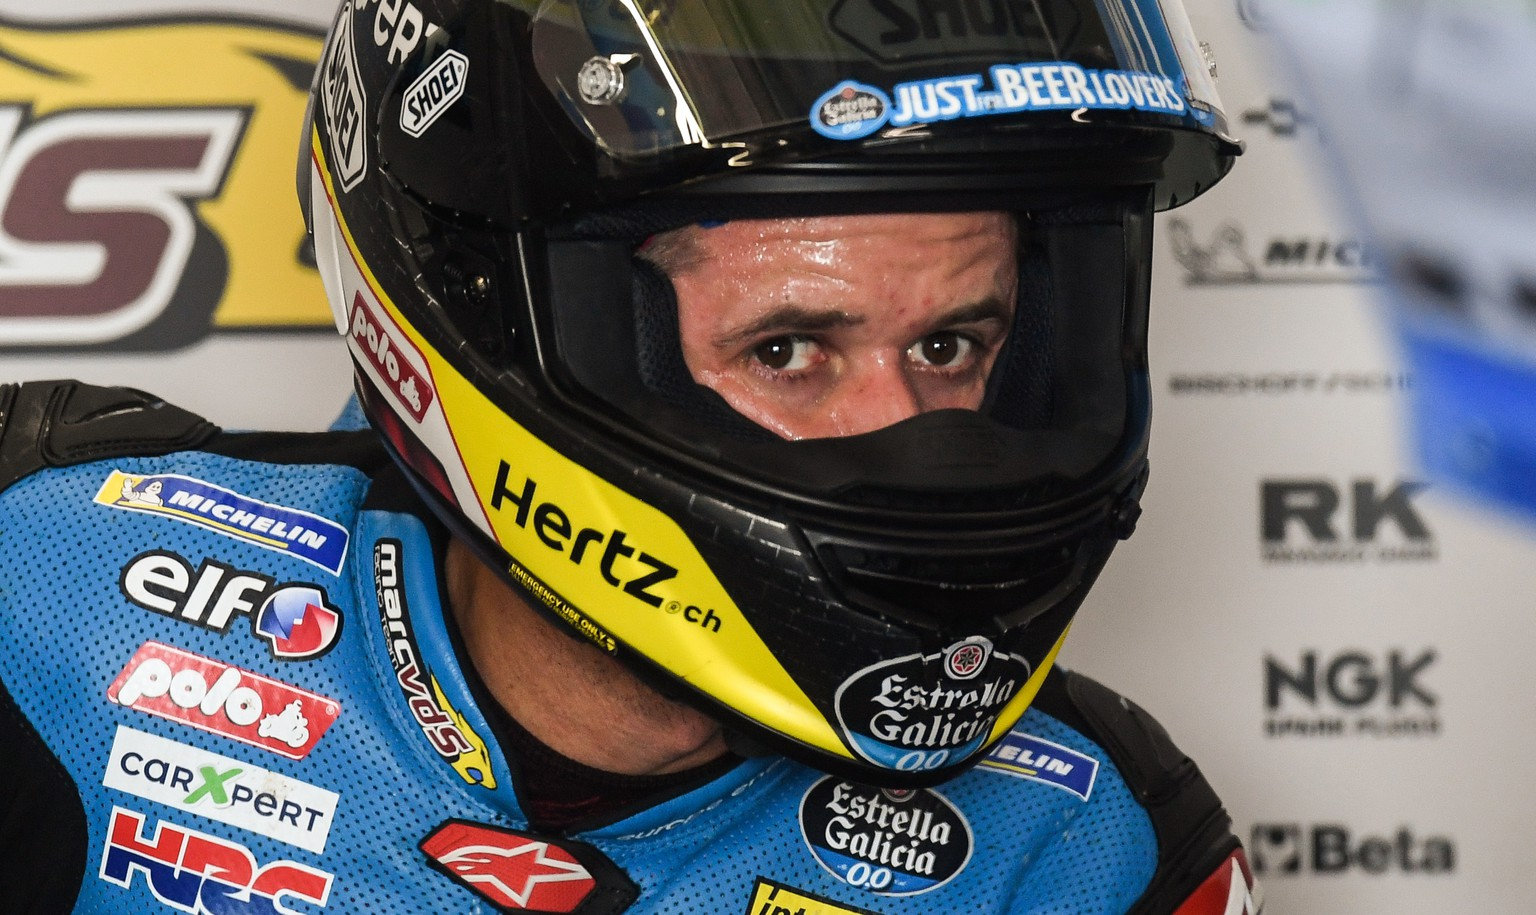 epa06887478 Swiss Moto GP rider Thomas Luethi of EG 0,0 Marc VDS  in his team's box during the free practice session of the motorcycling Grand Prix of Germany at the Sachsenring racing circuit in Hohenstein-Ernstthal, Germany, 14 July 2018. The Motorcycling Grand Prix of Germany takes place on 15 July.  EPA/FILIP SINGER